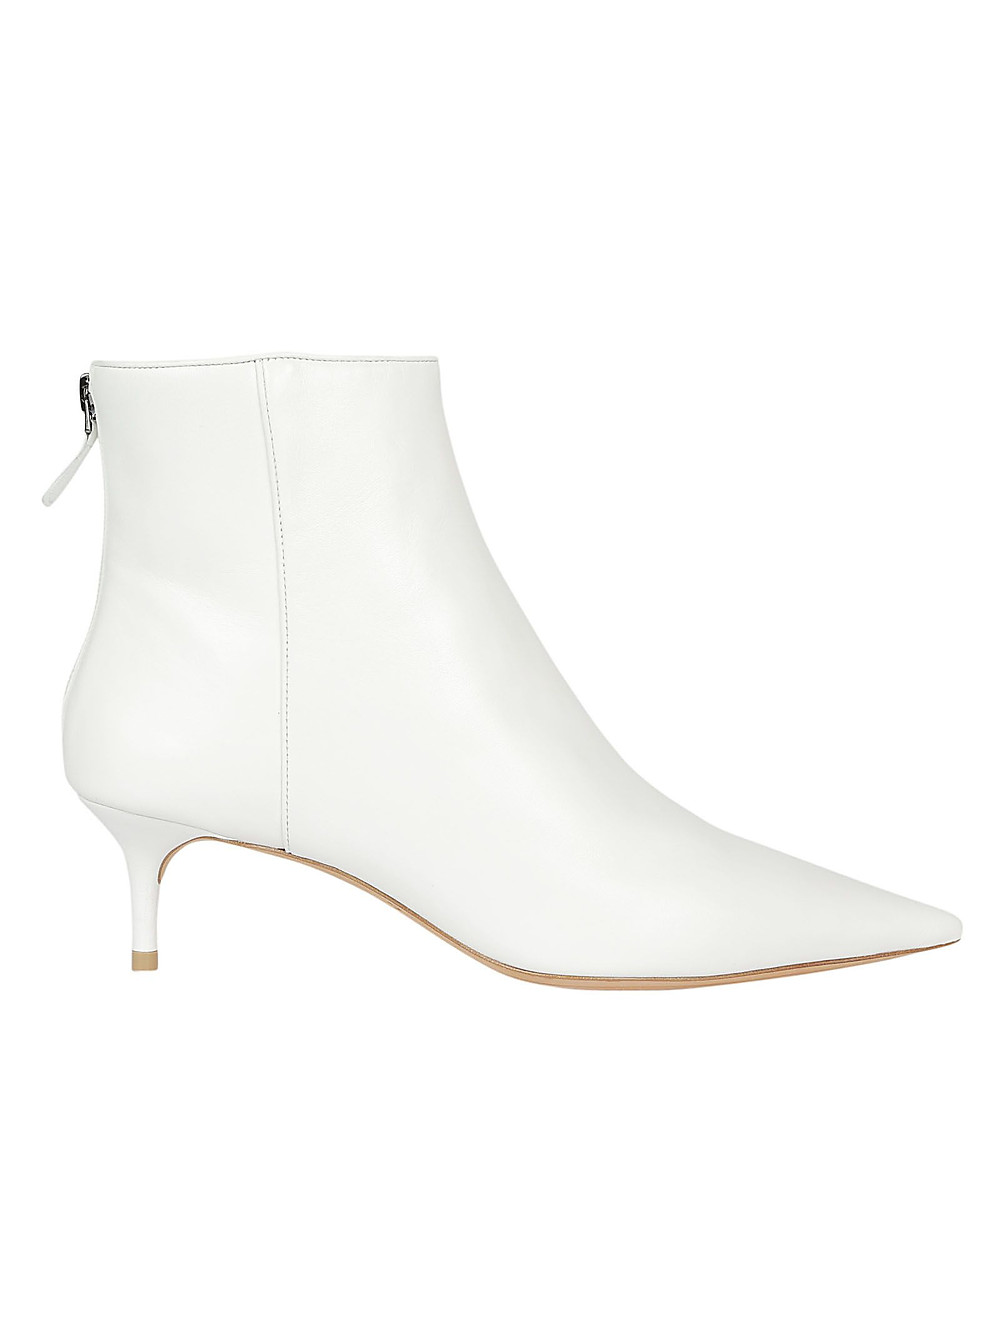 Alexandre Birman White Point Toe Kitten Heel Bootie